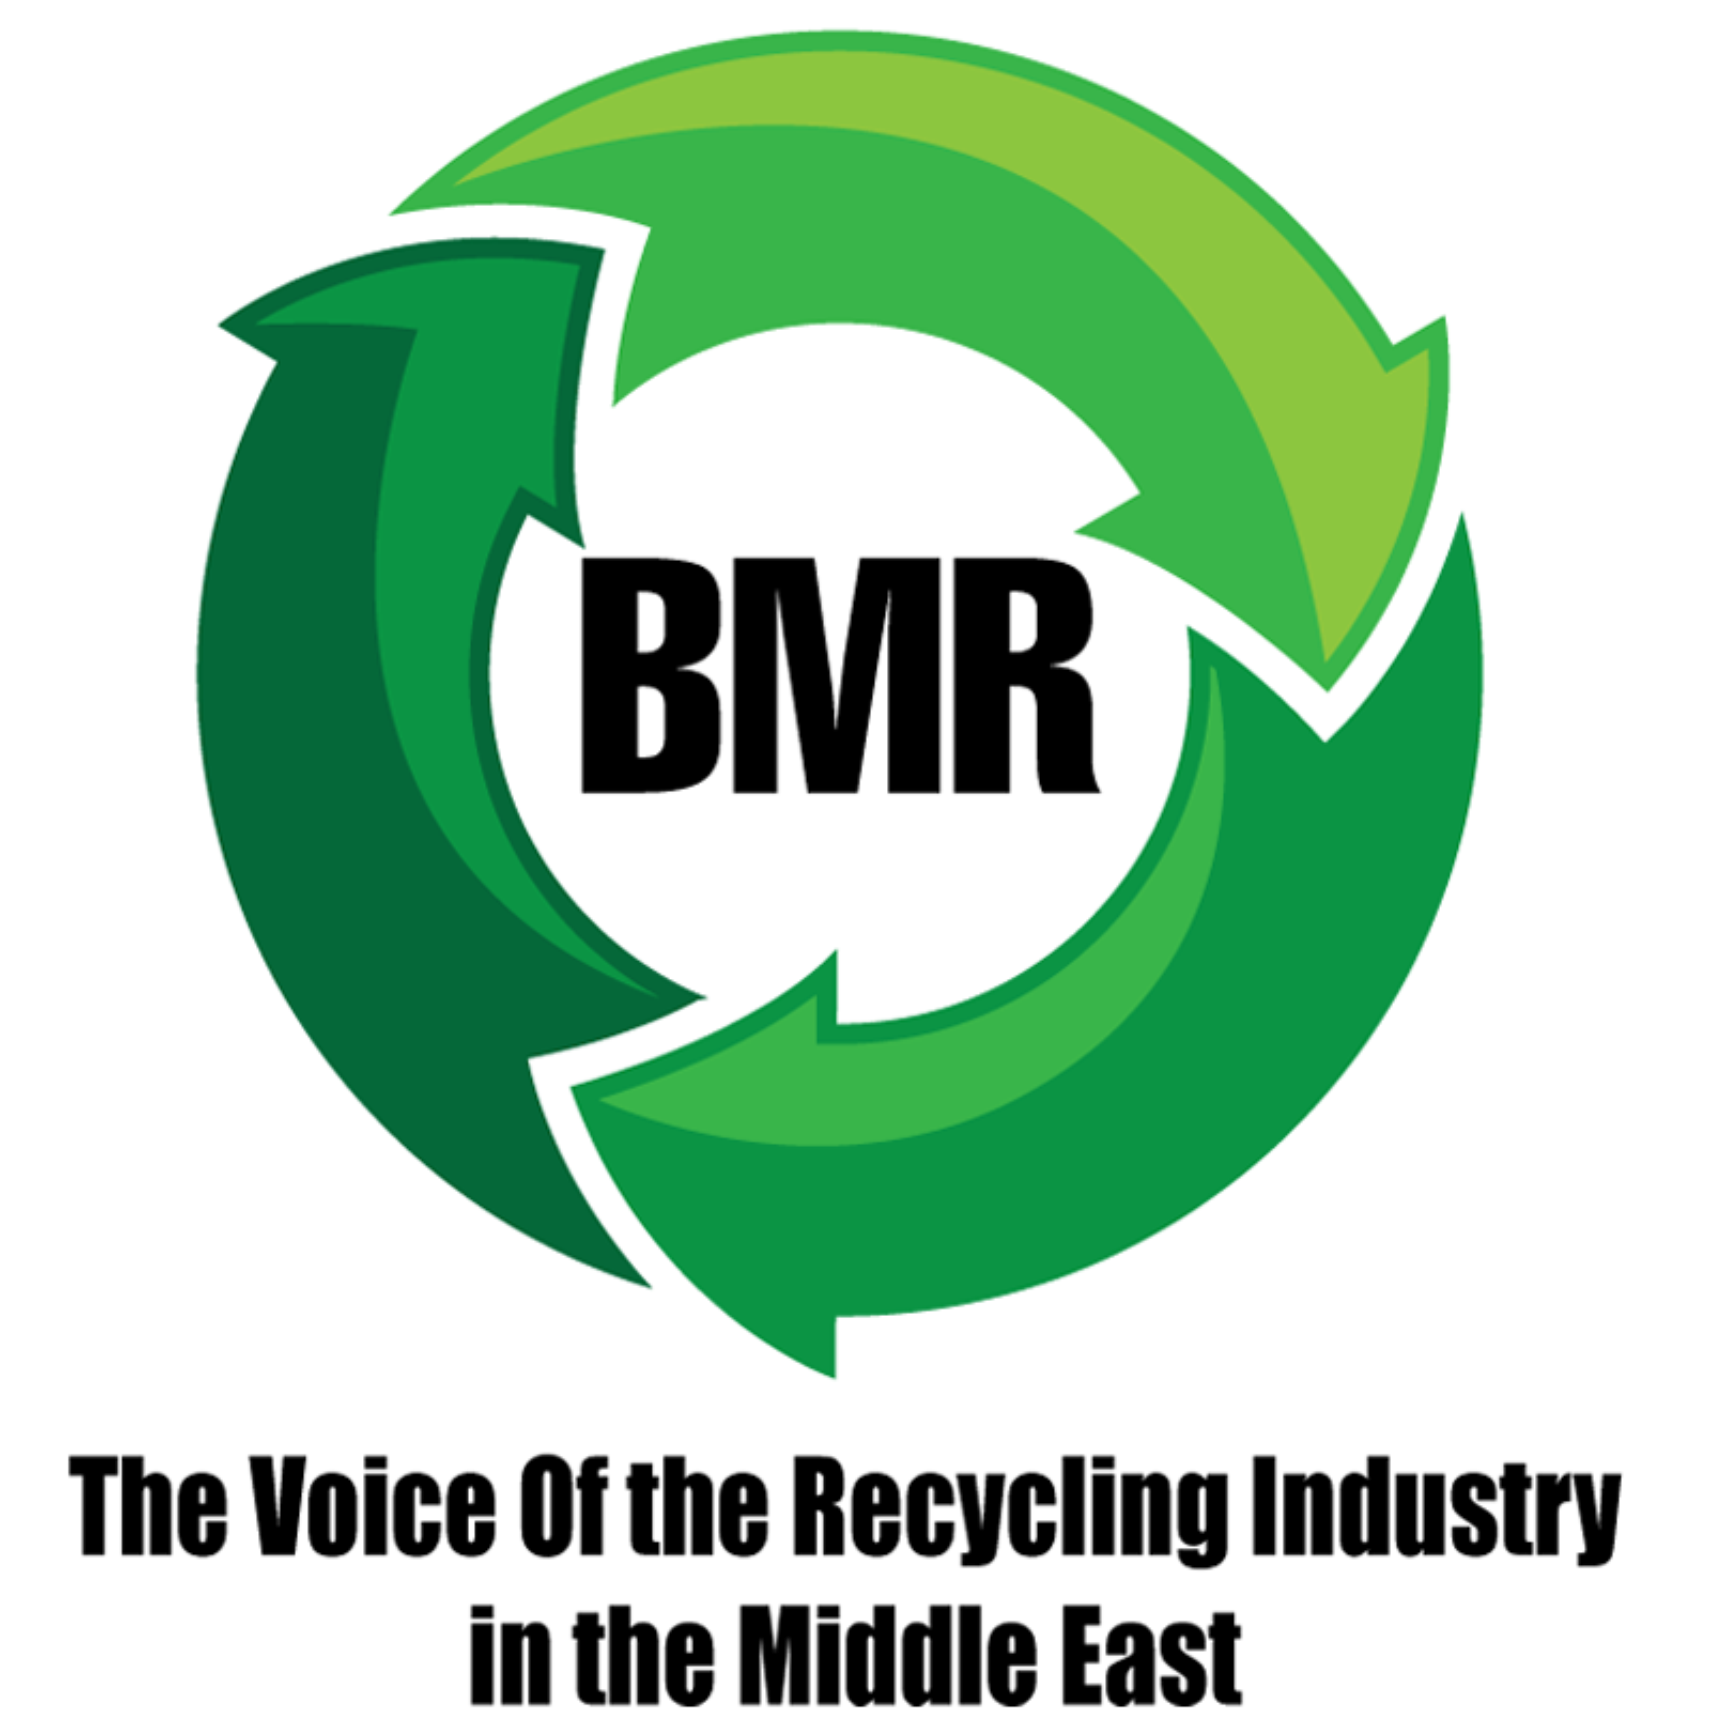 Bureau Of Middle East Recycling (BMR)